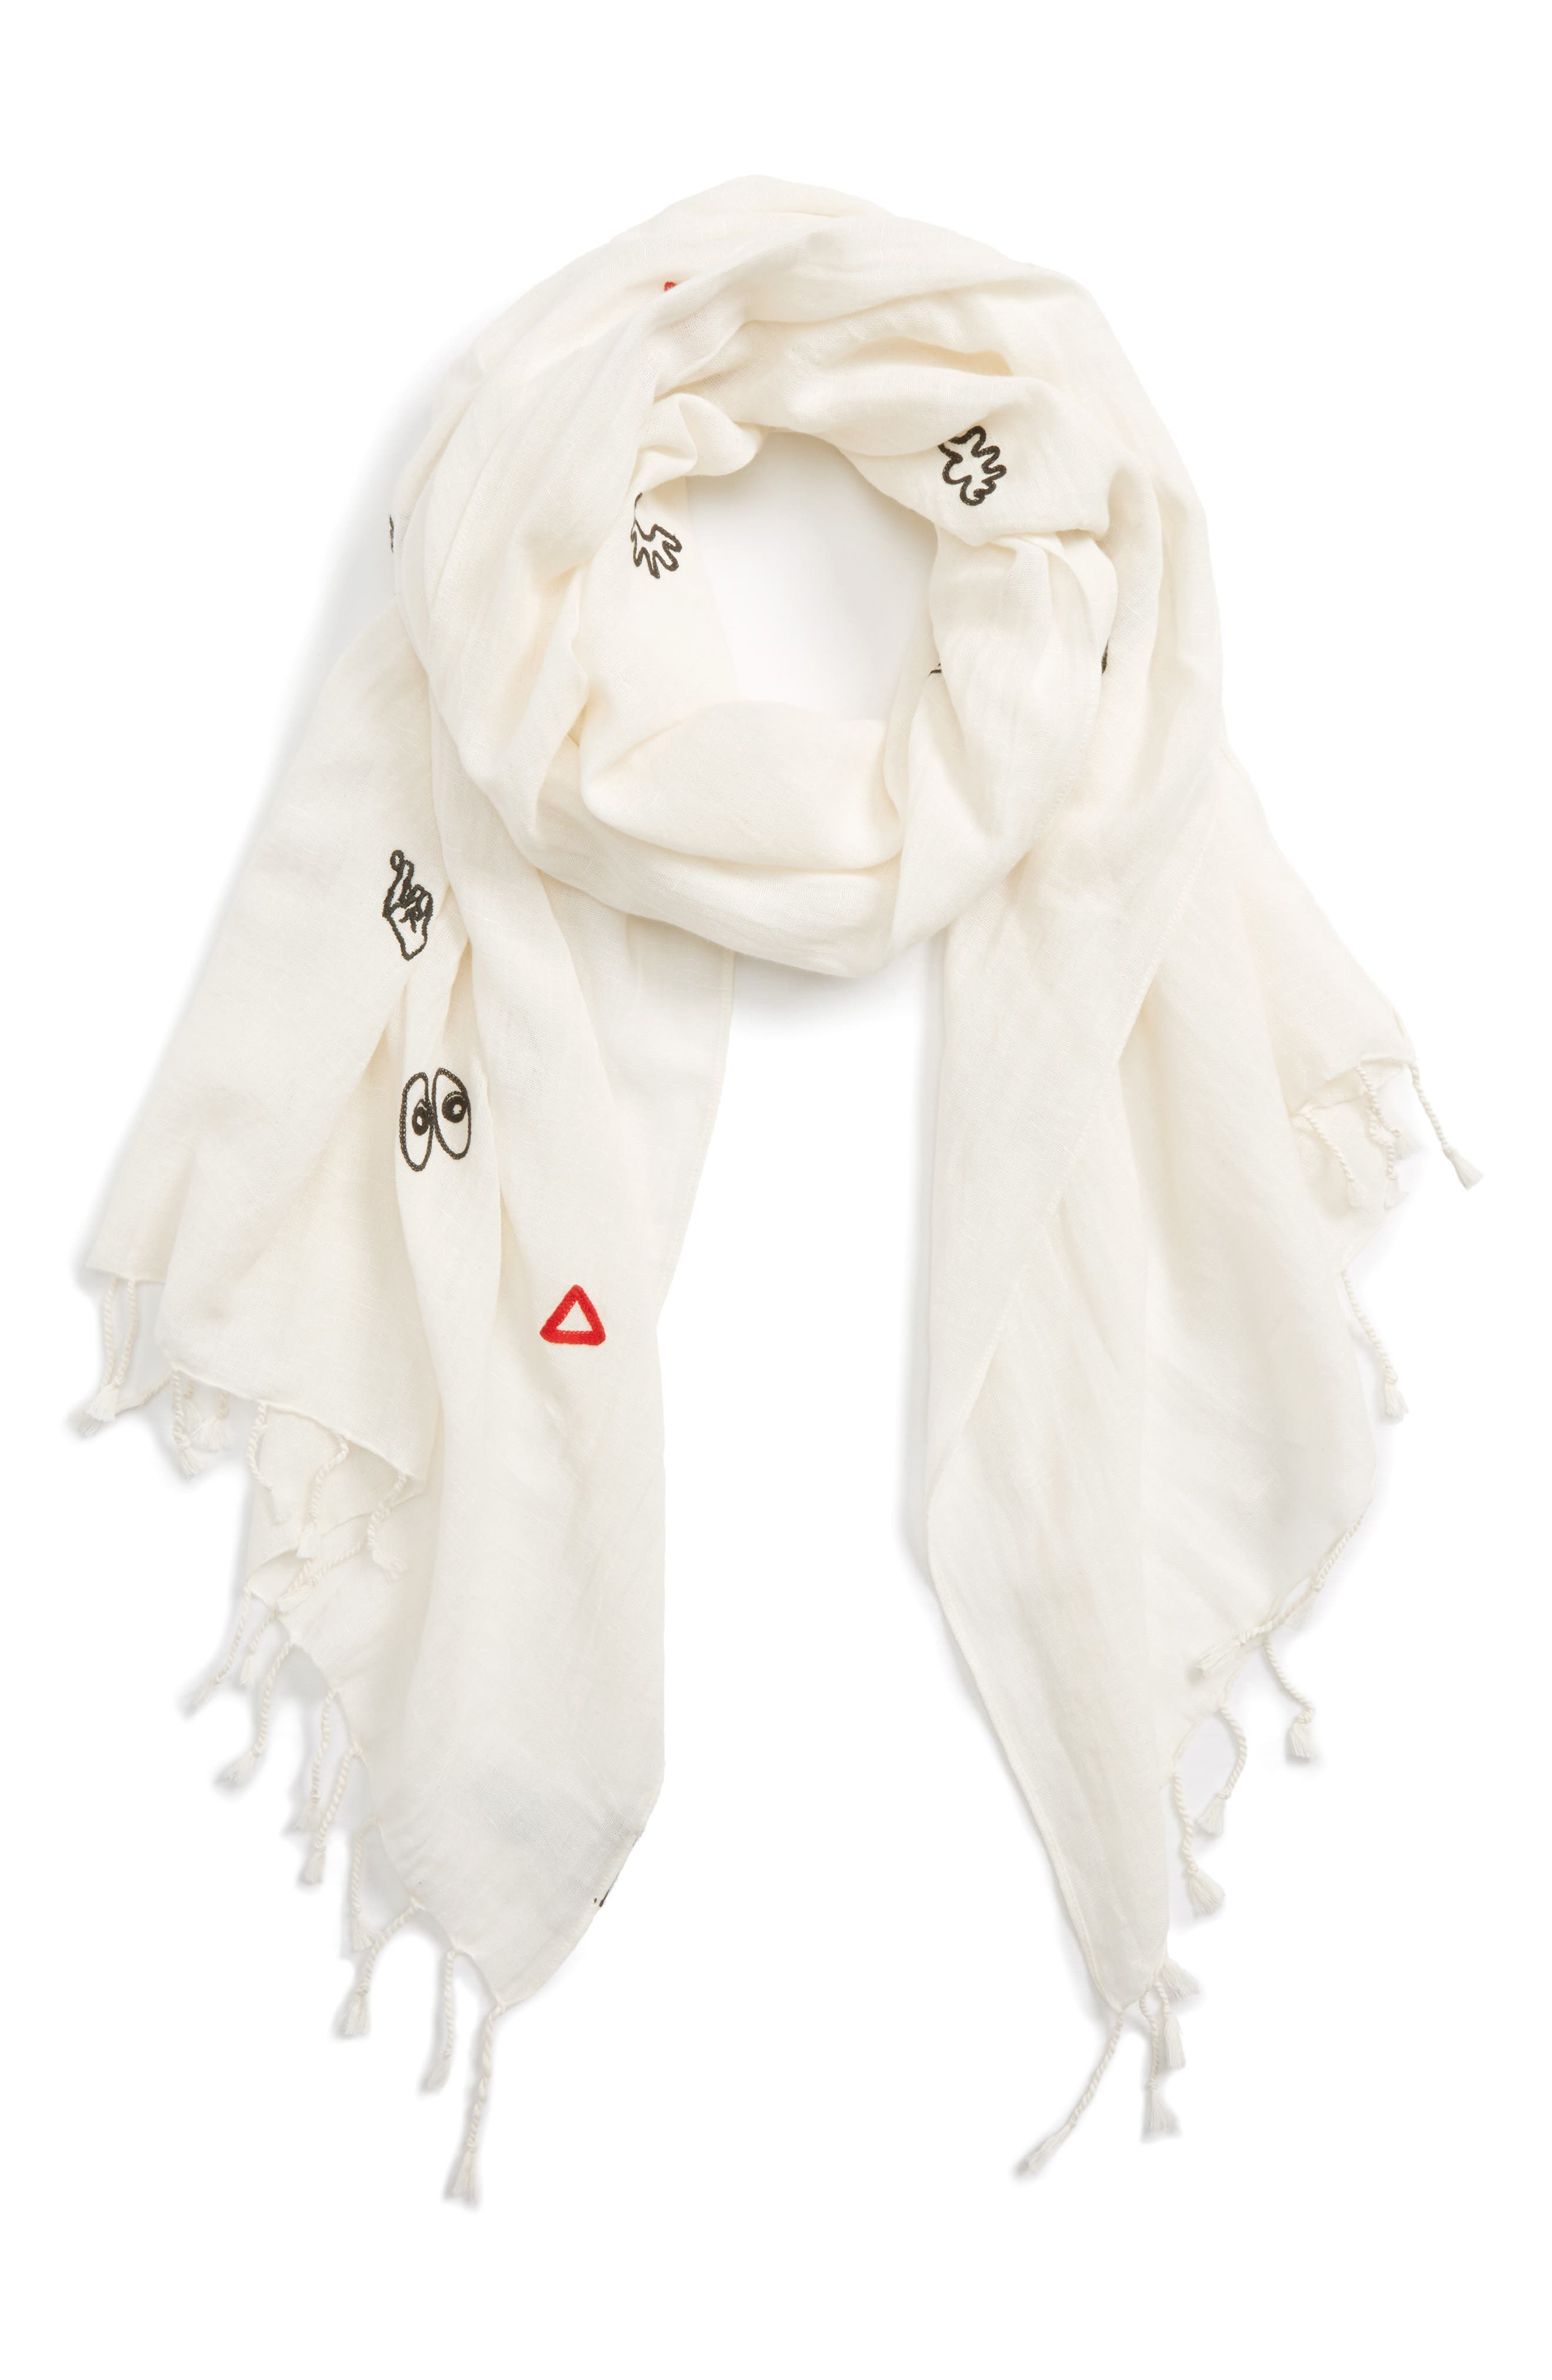 Alternate Image 1 Selected - Madewell Embroidered Making Faces Scarf